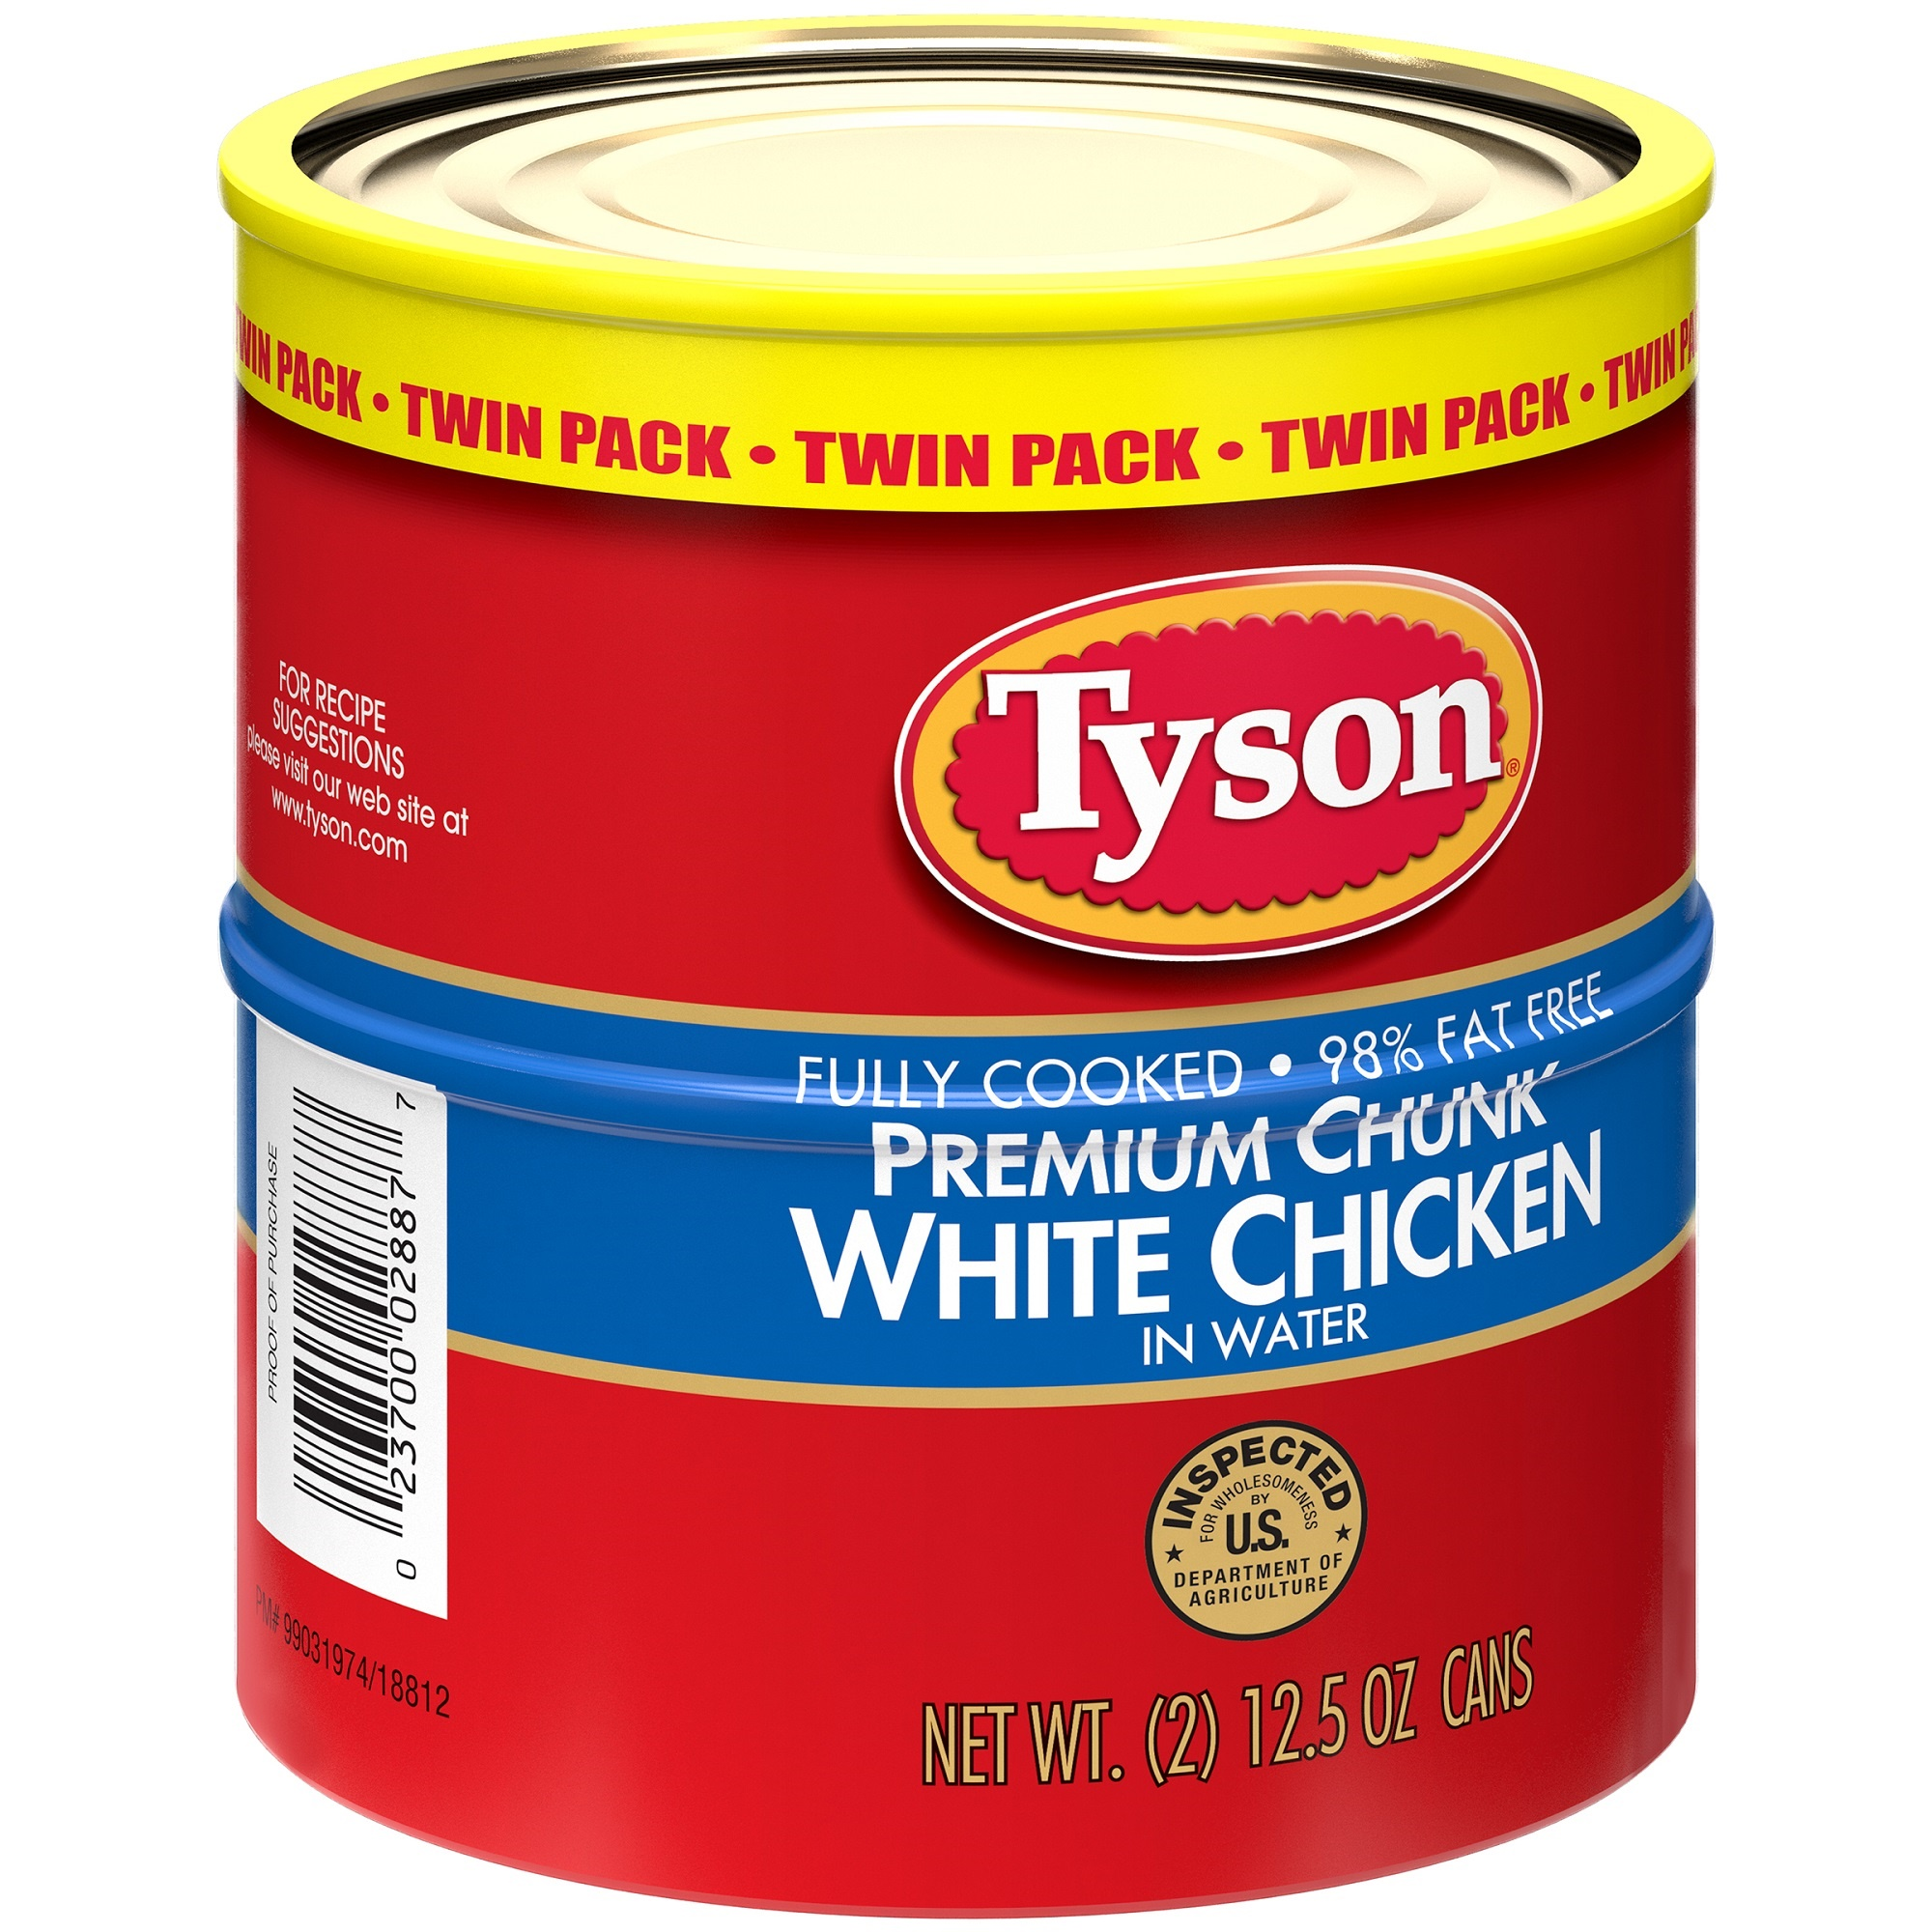 Tyson Premium Chunk White Chicken Twin Pack, 12.5 oz